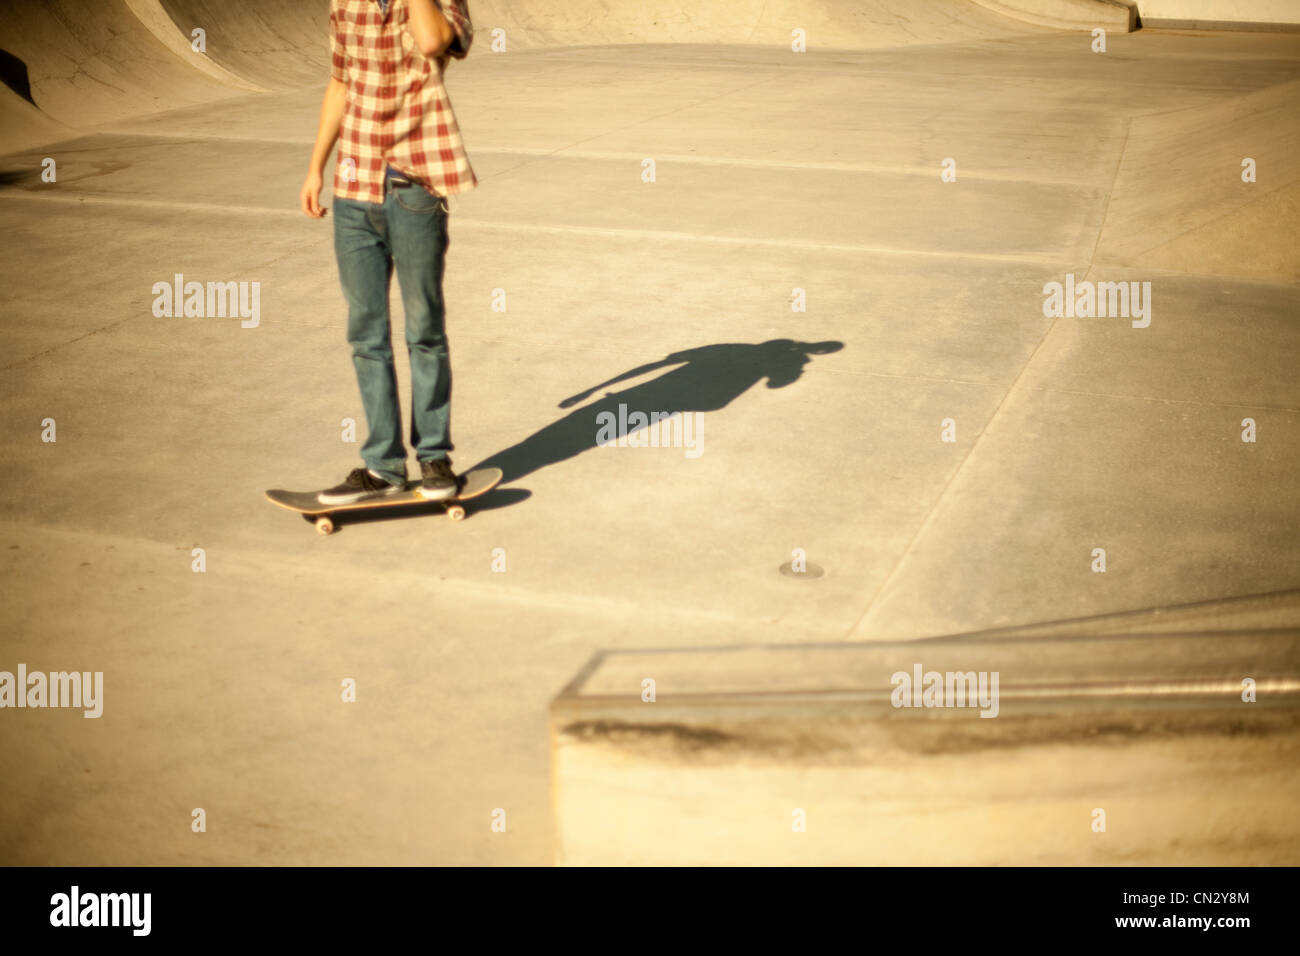 Skateboarder in skate park - Stock Image